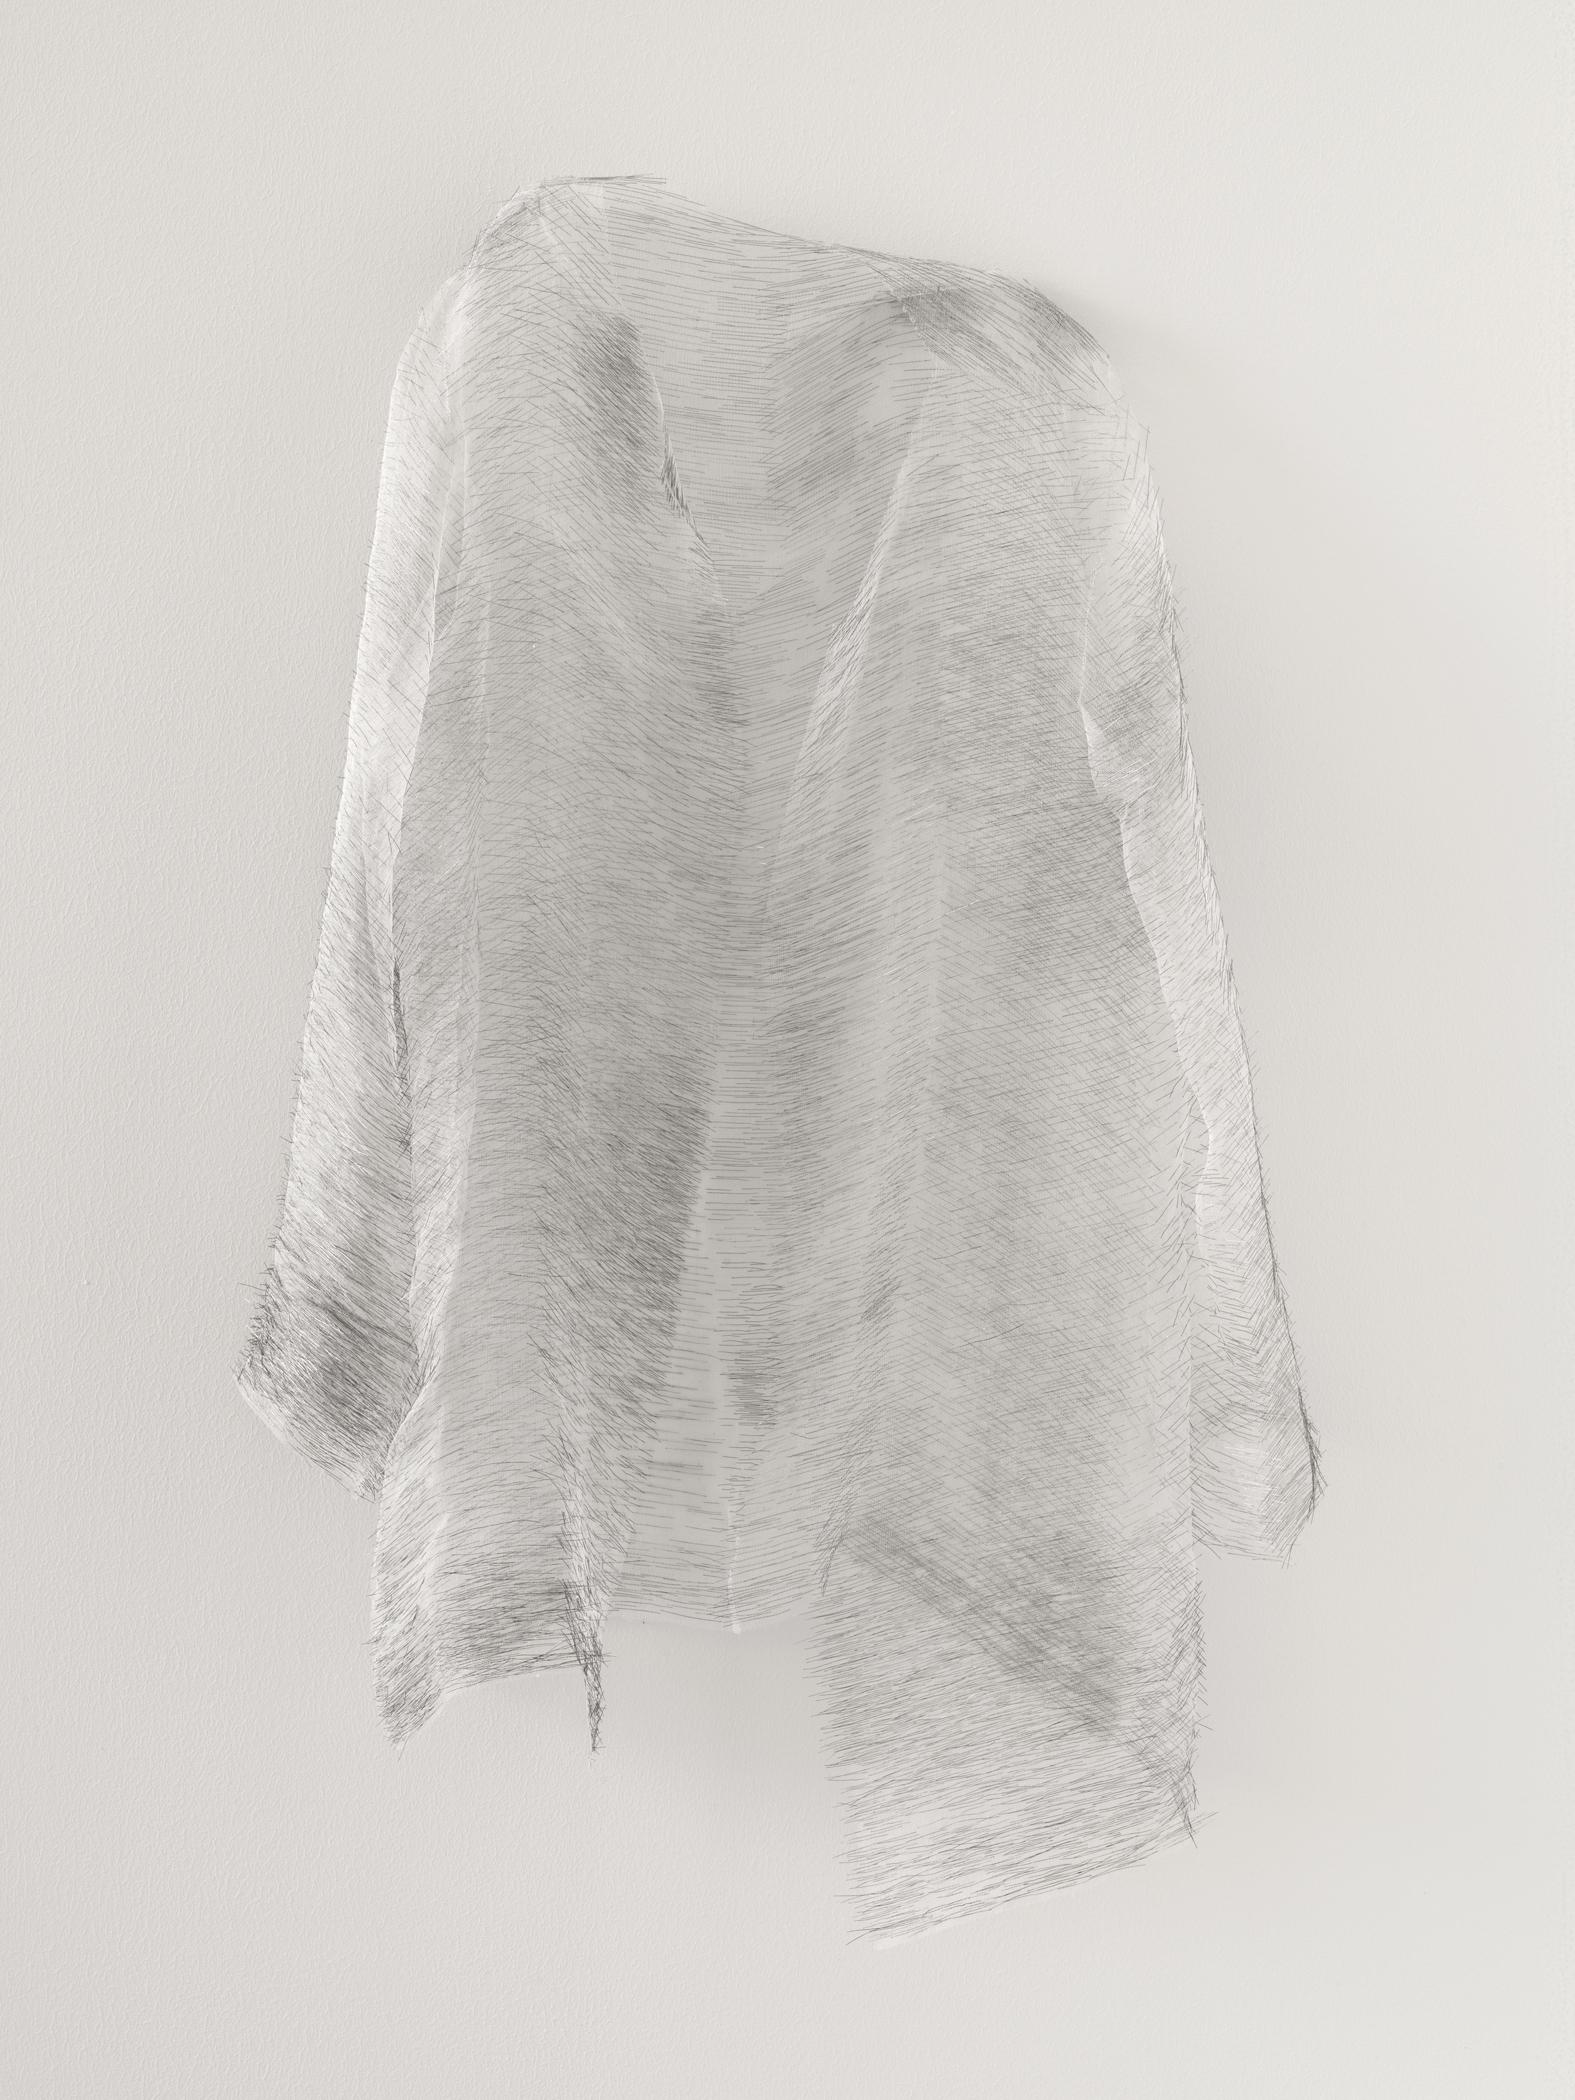 A piece of nearly translucent gray cloth hangs effortlessly off the wall in a shape reminiscent of a ghost.